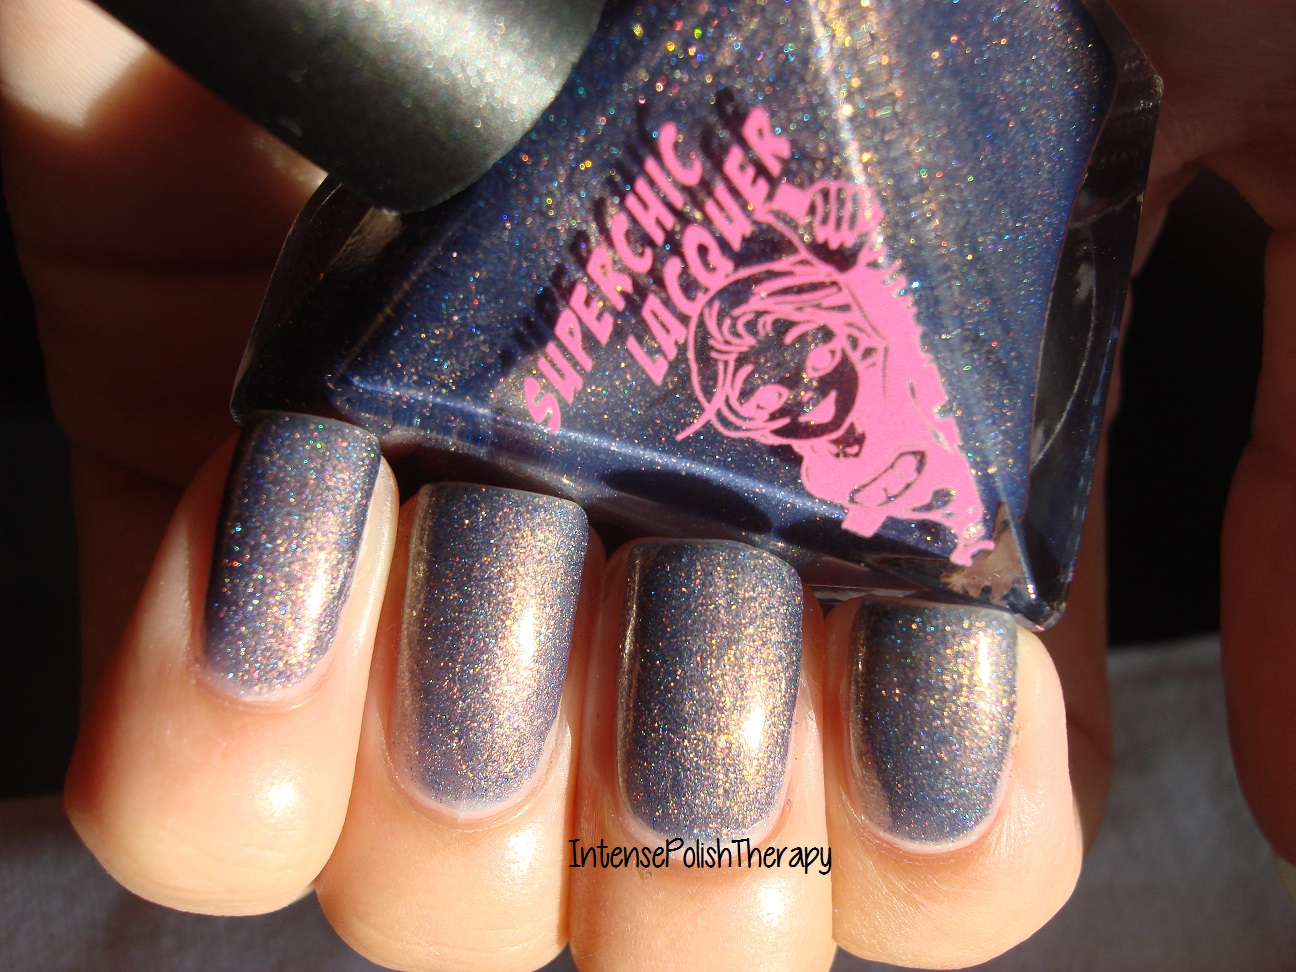 Superchic Lacquer - Baker's Hunger For A Bun In The Oven